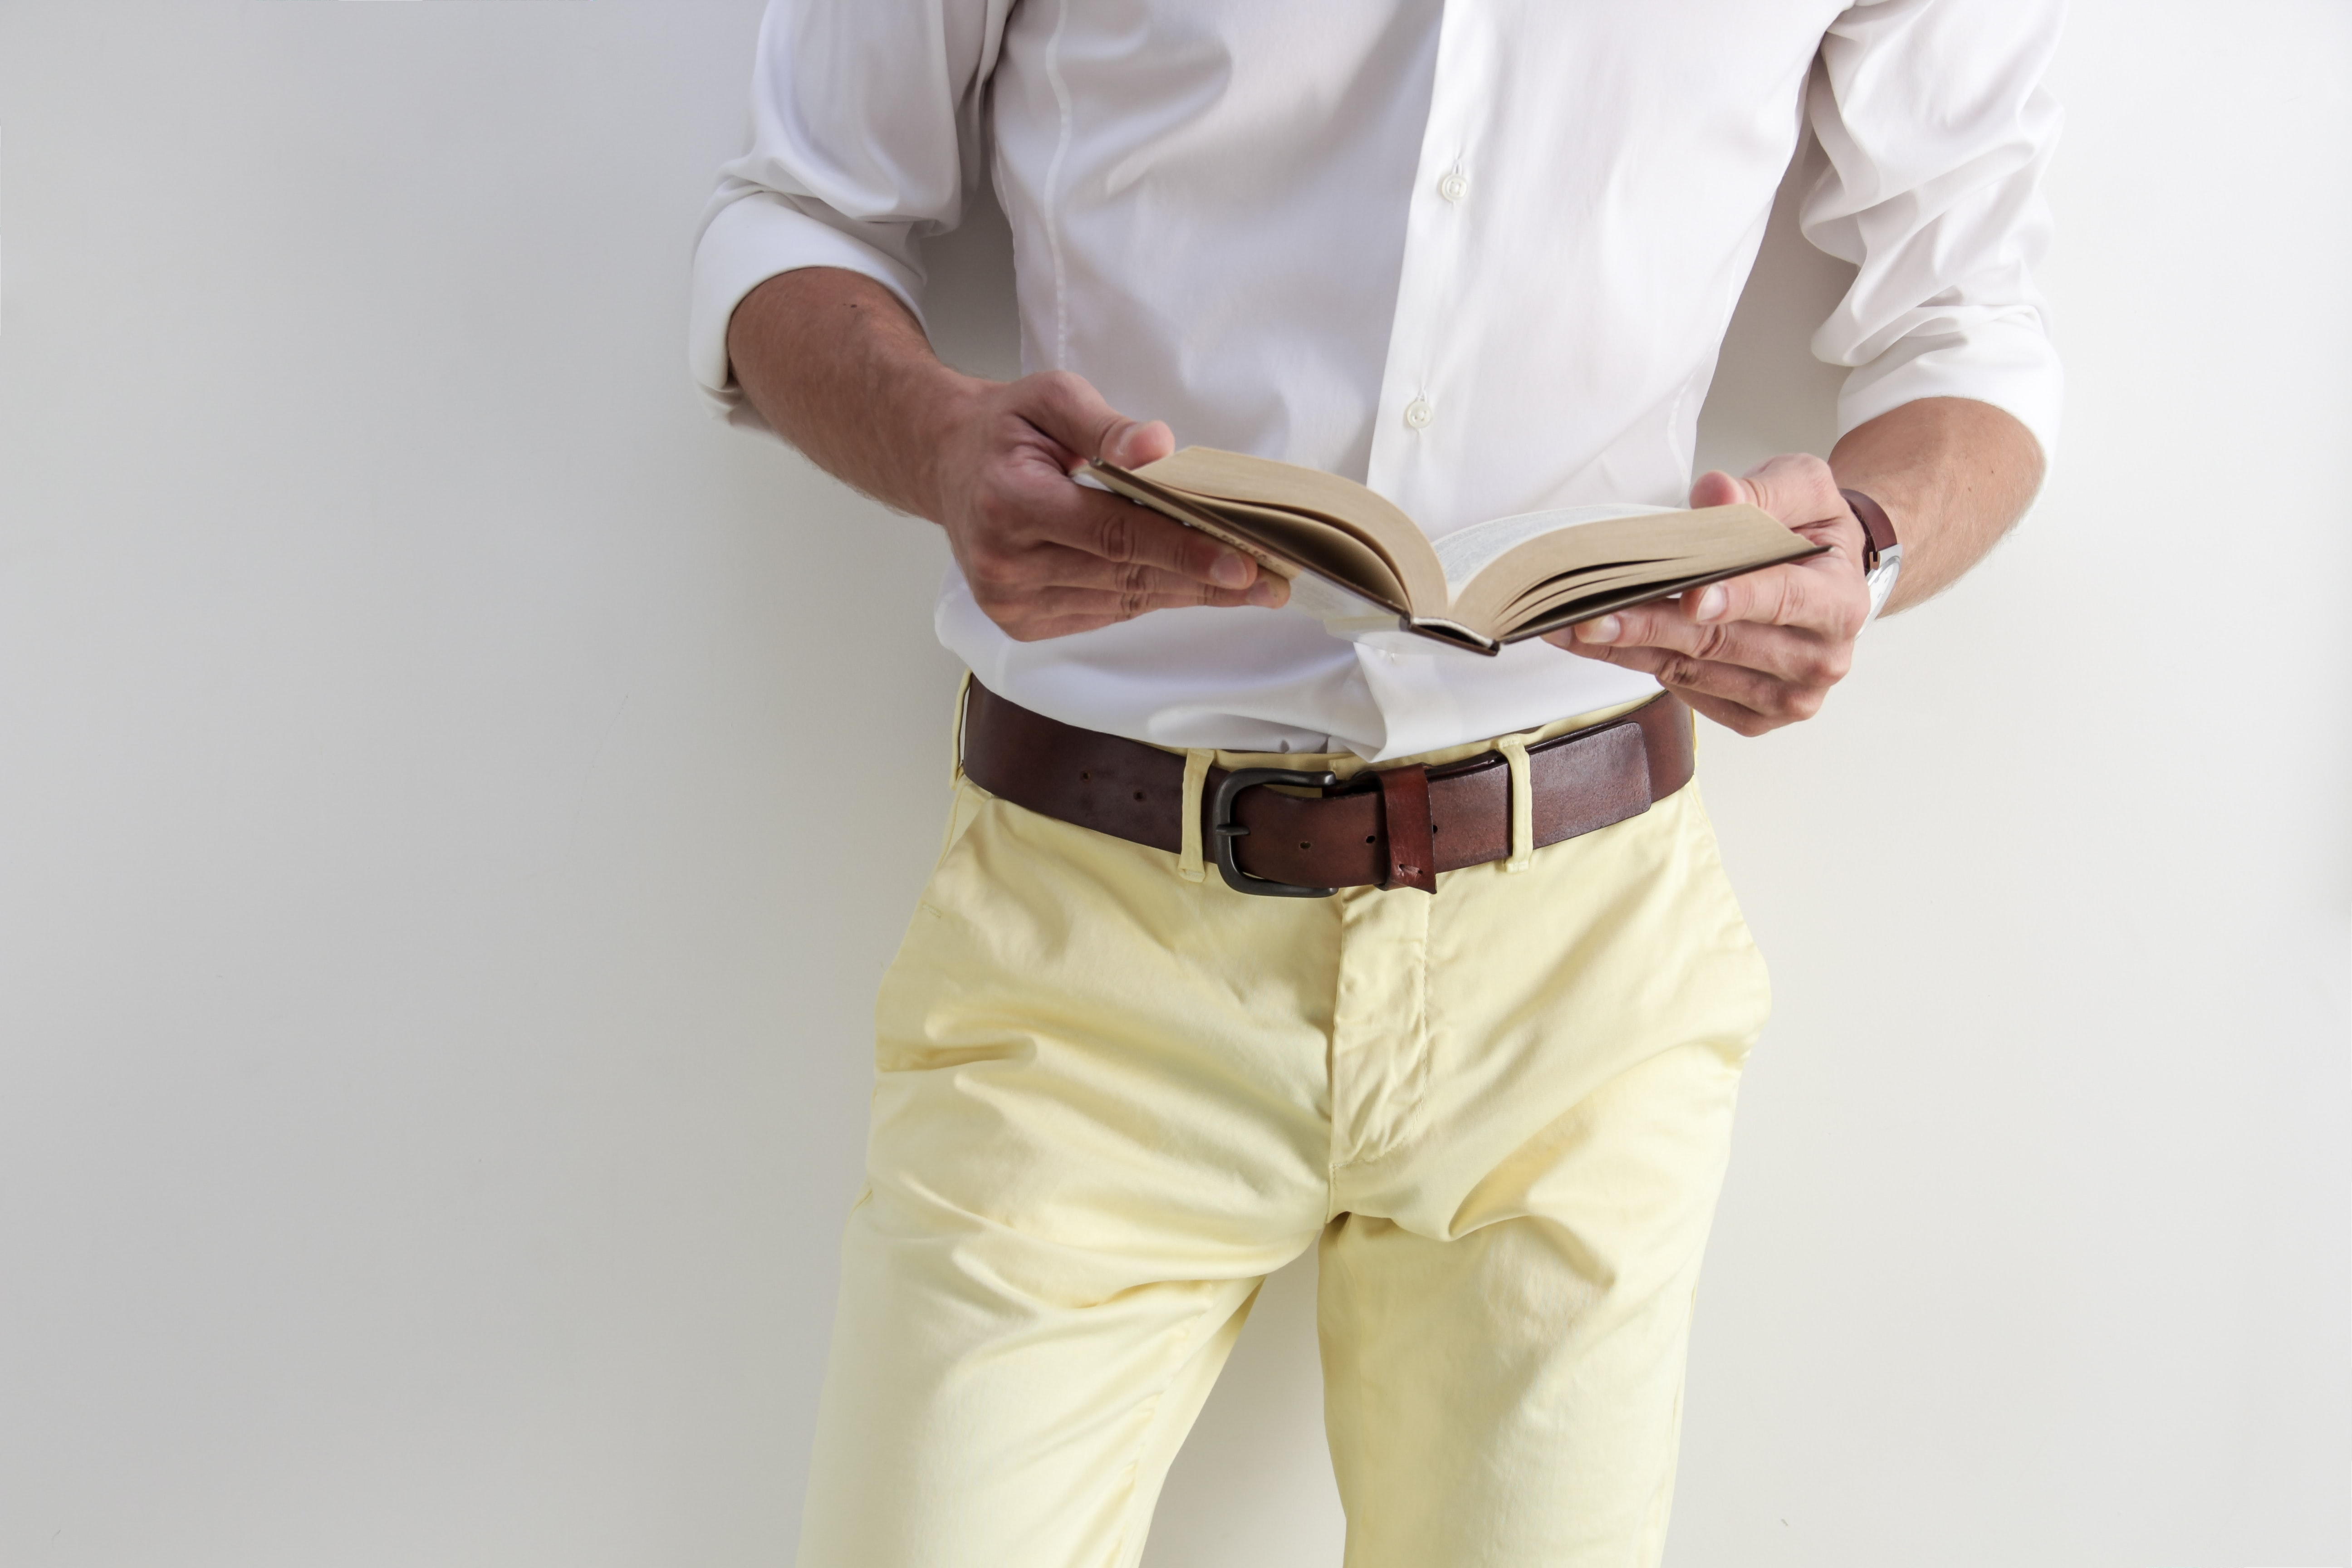 Office gift set guide for your male colleagues